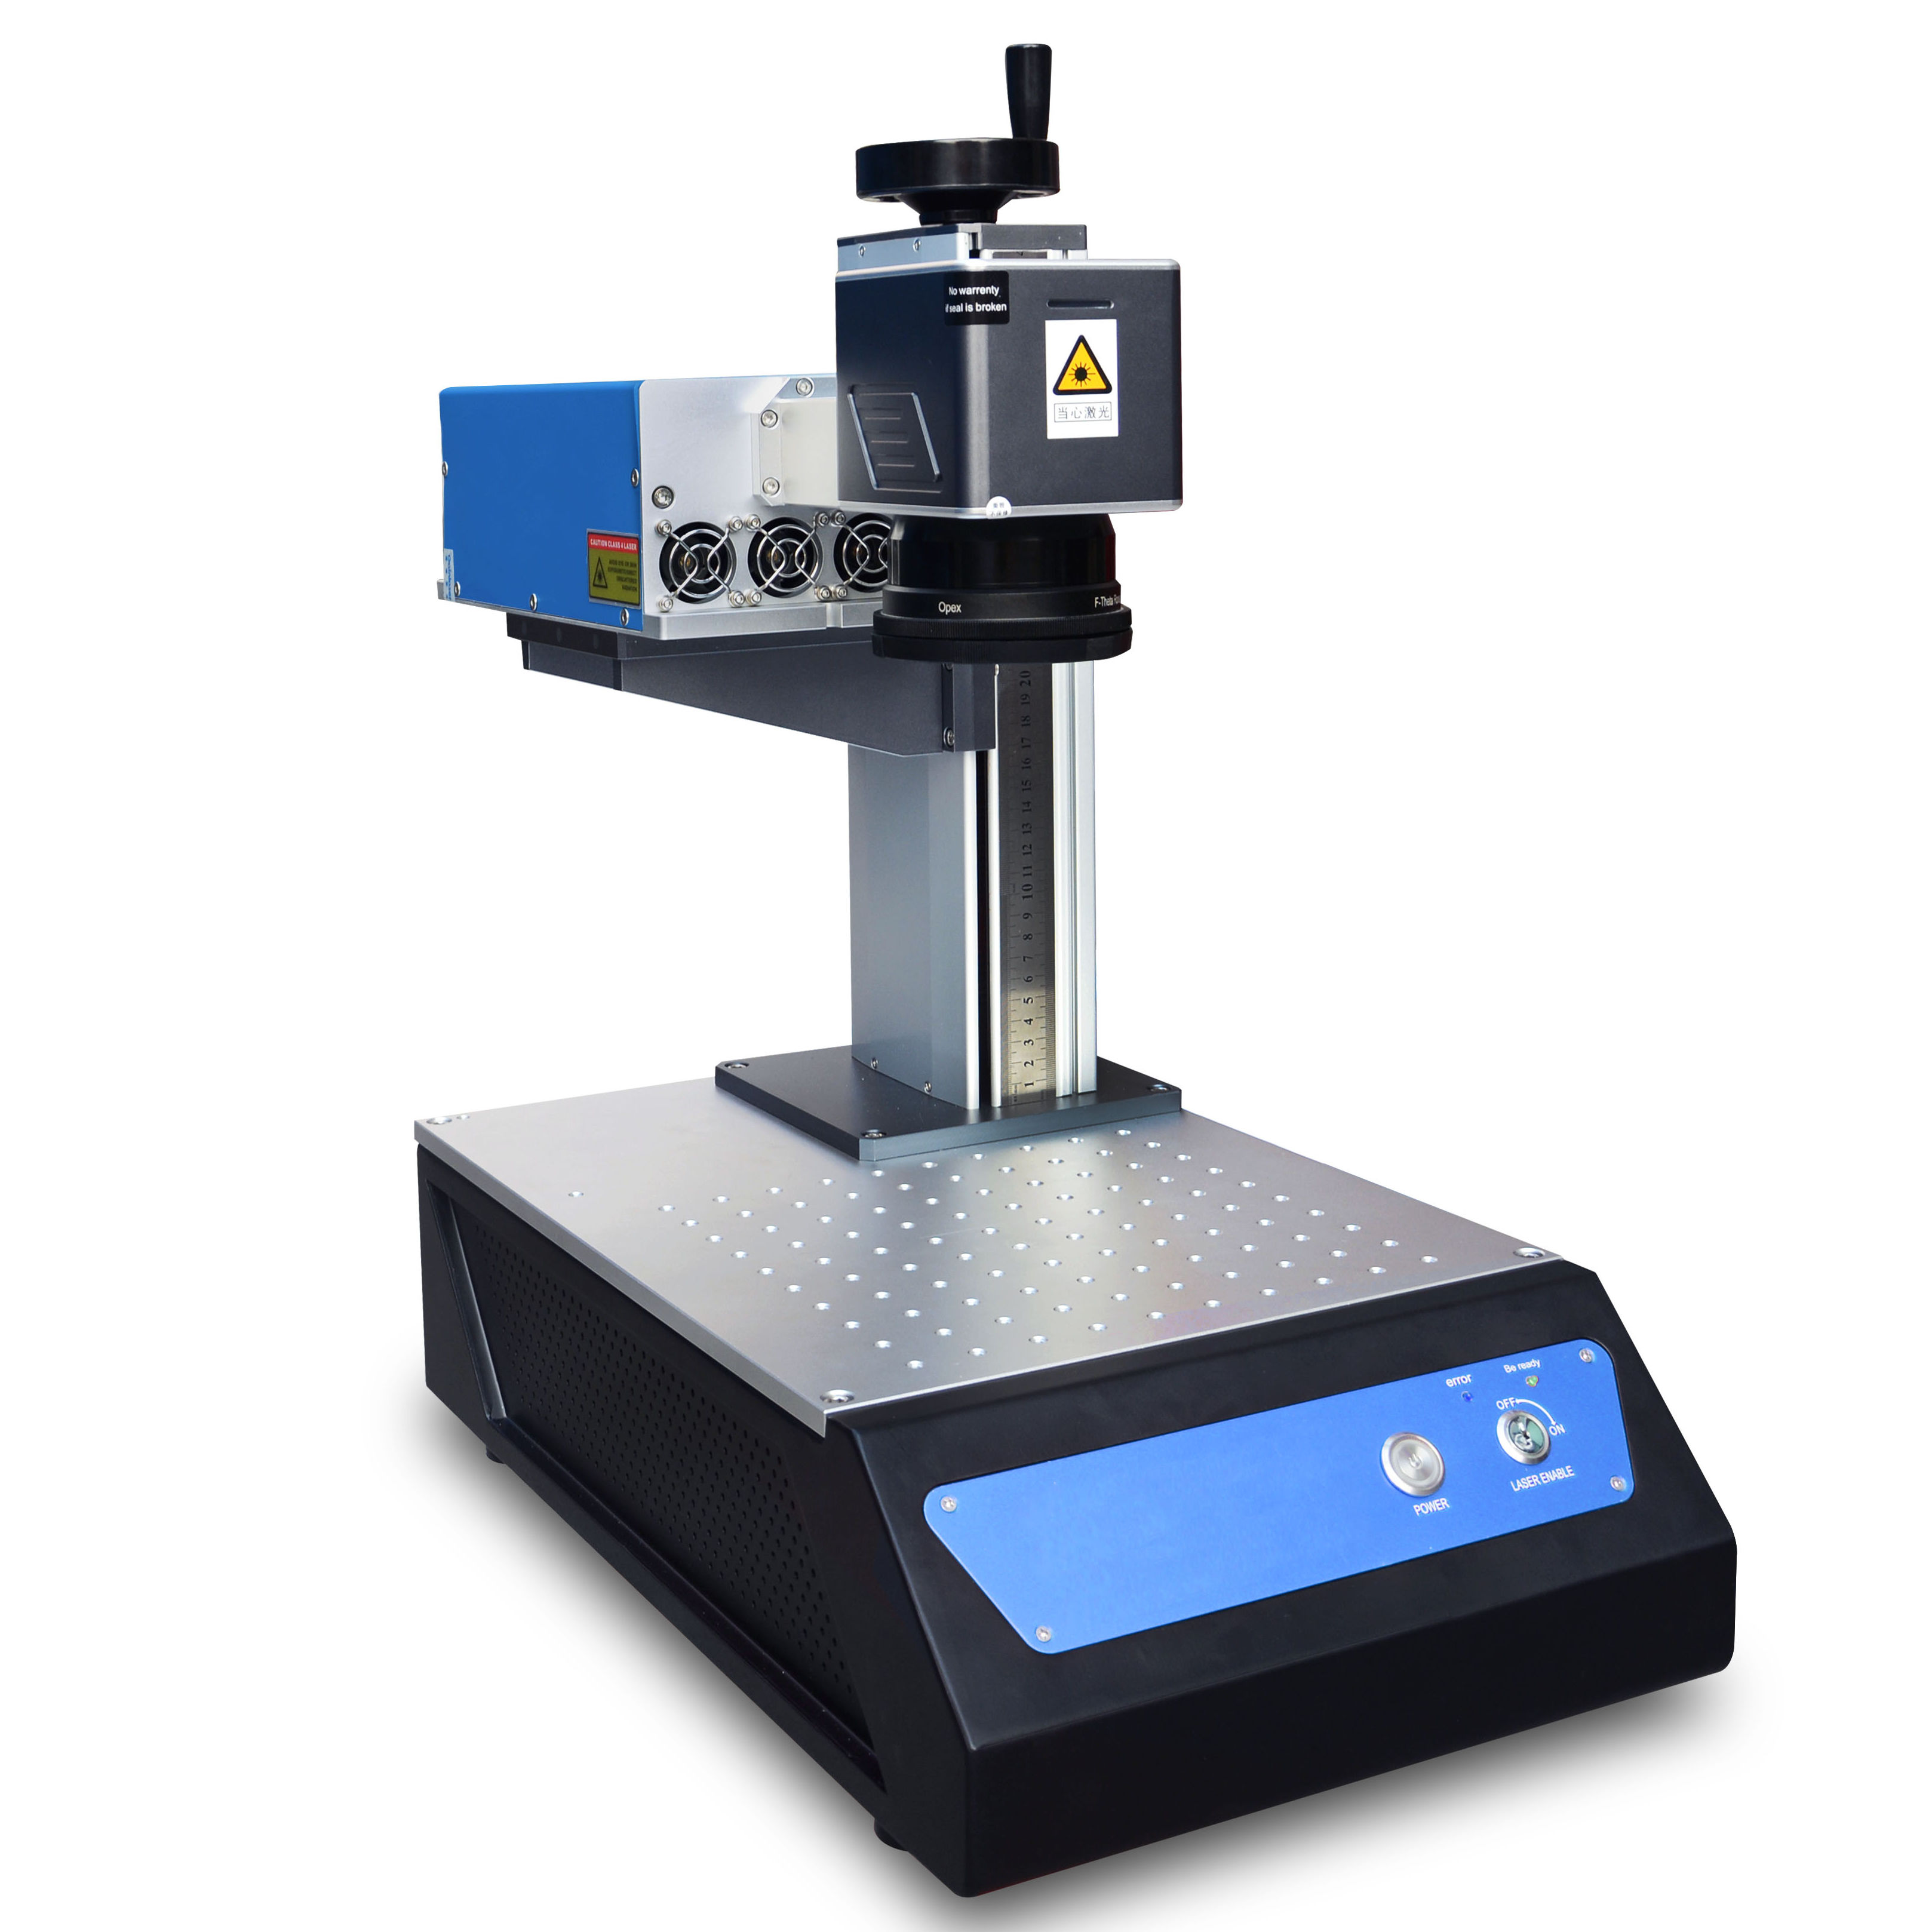 Desktop mini uv laser engraving machine metal glass ceramics all-purpose precision cold light air cool uv laser marking machine